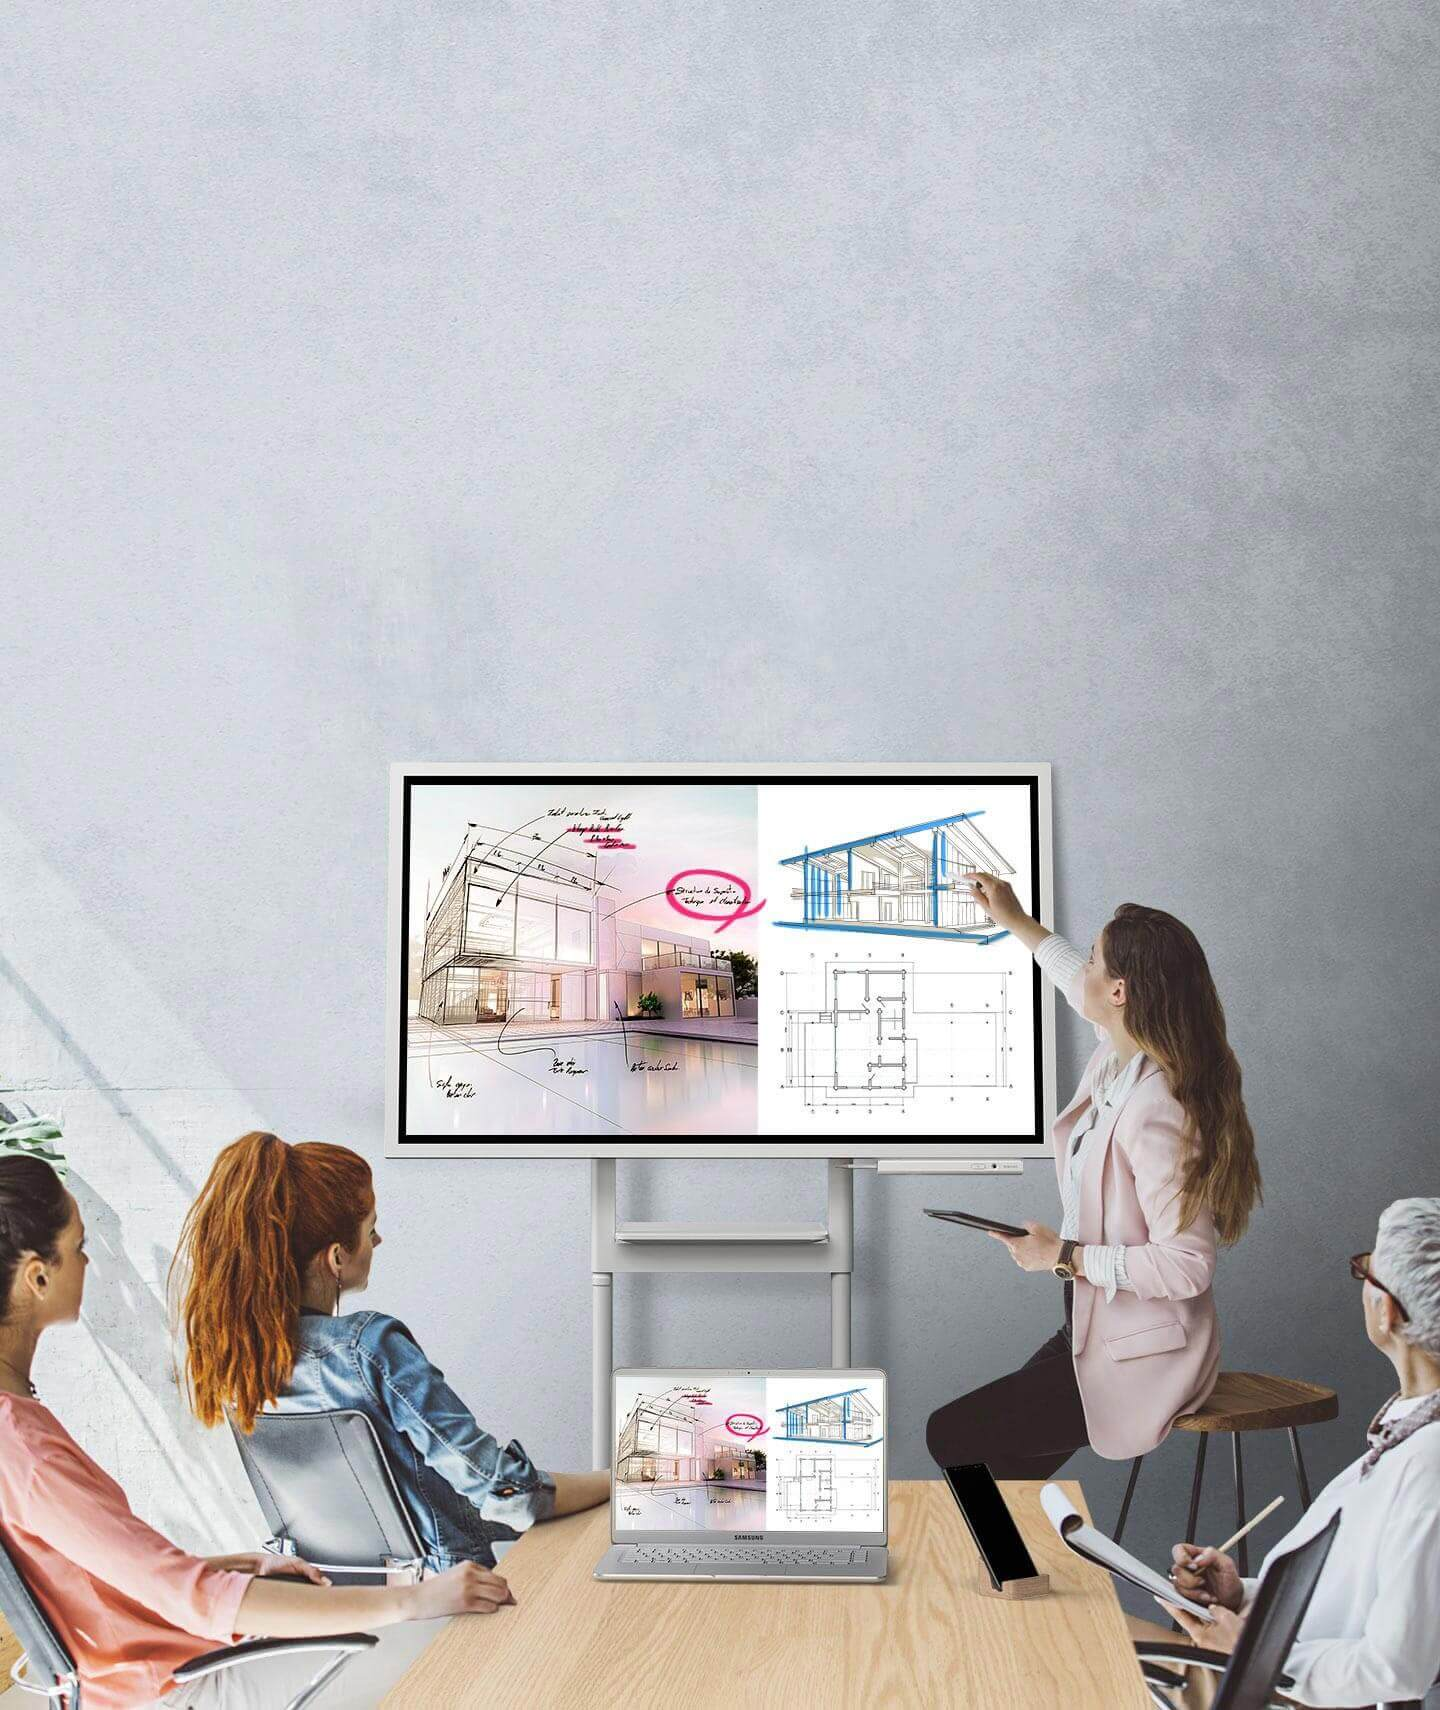 An image showing four people in a meeting where a Samsung Flip device and a pc are connected, showing the same images. They are looking at the Samsung Flip's screen positioned in Landscape mode and two of them are taking notes.